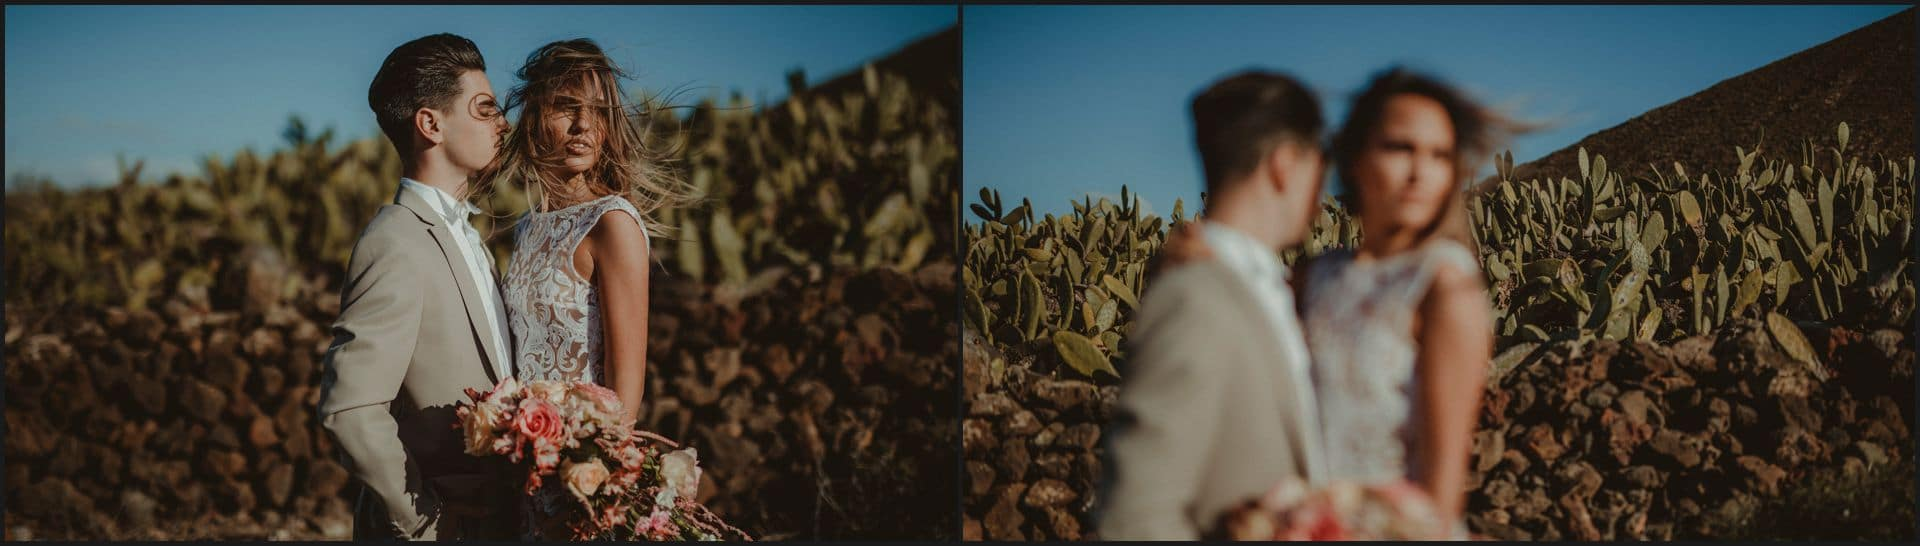 lanzarote, wedding, elopement, bride, groom, cactus